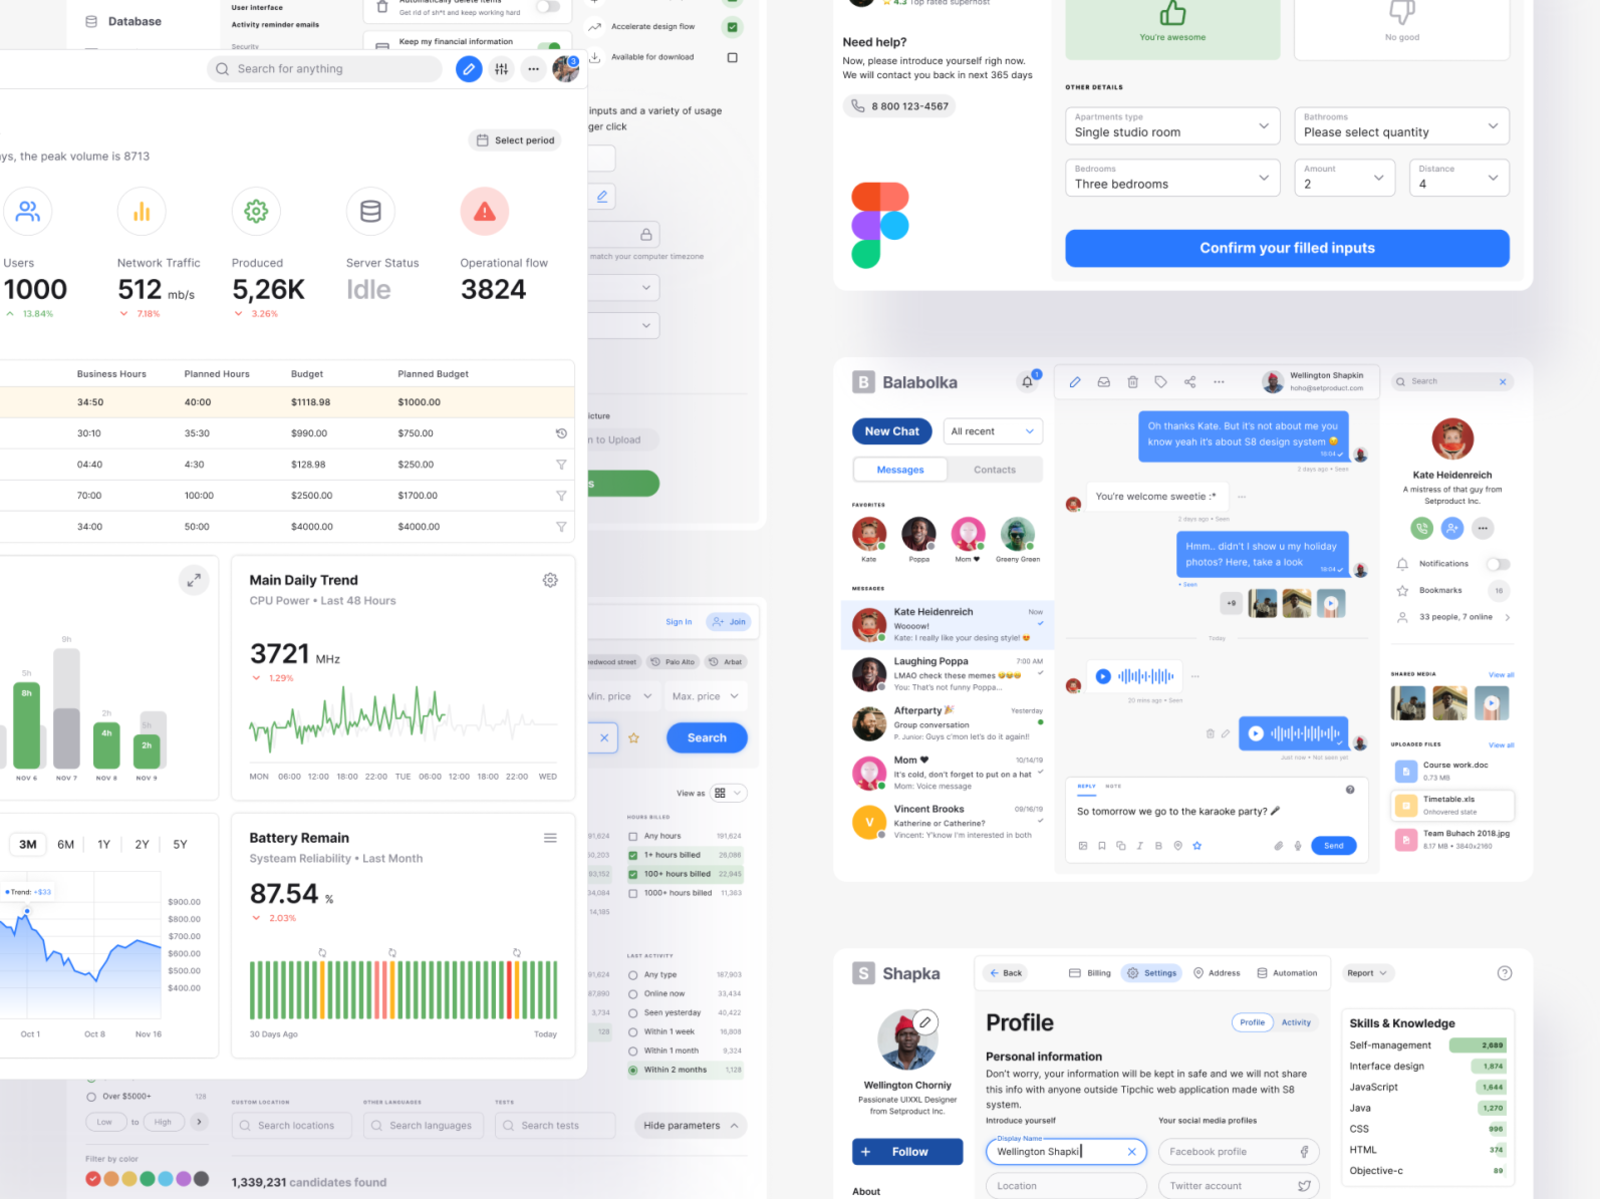 Figma Design System With 20 Desktop Templates By Roman Kamushken On Dribbble